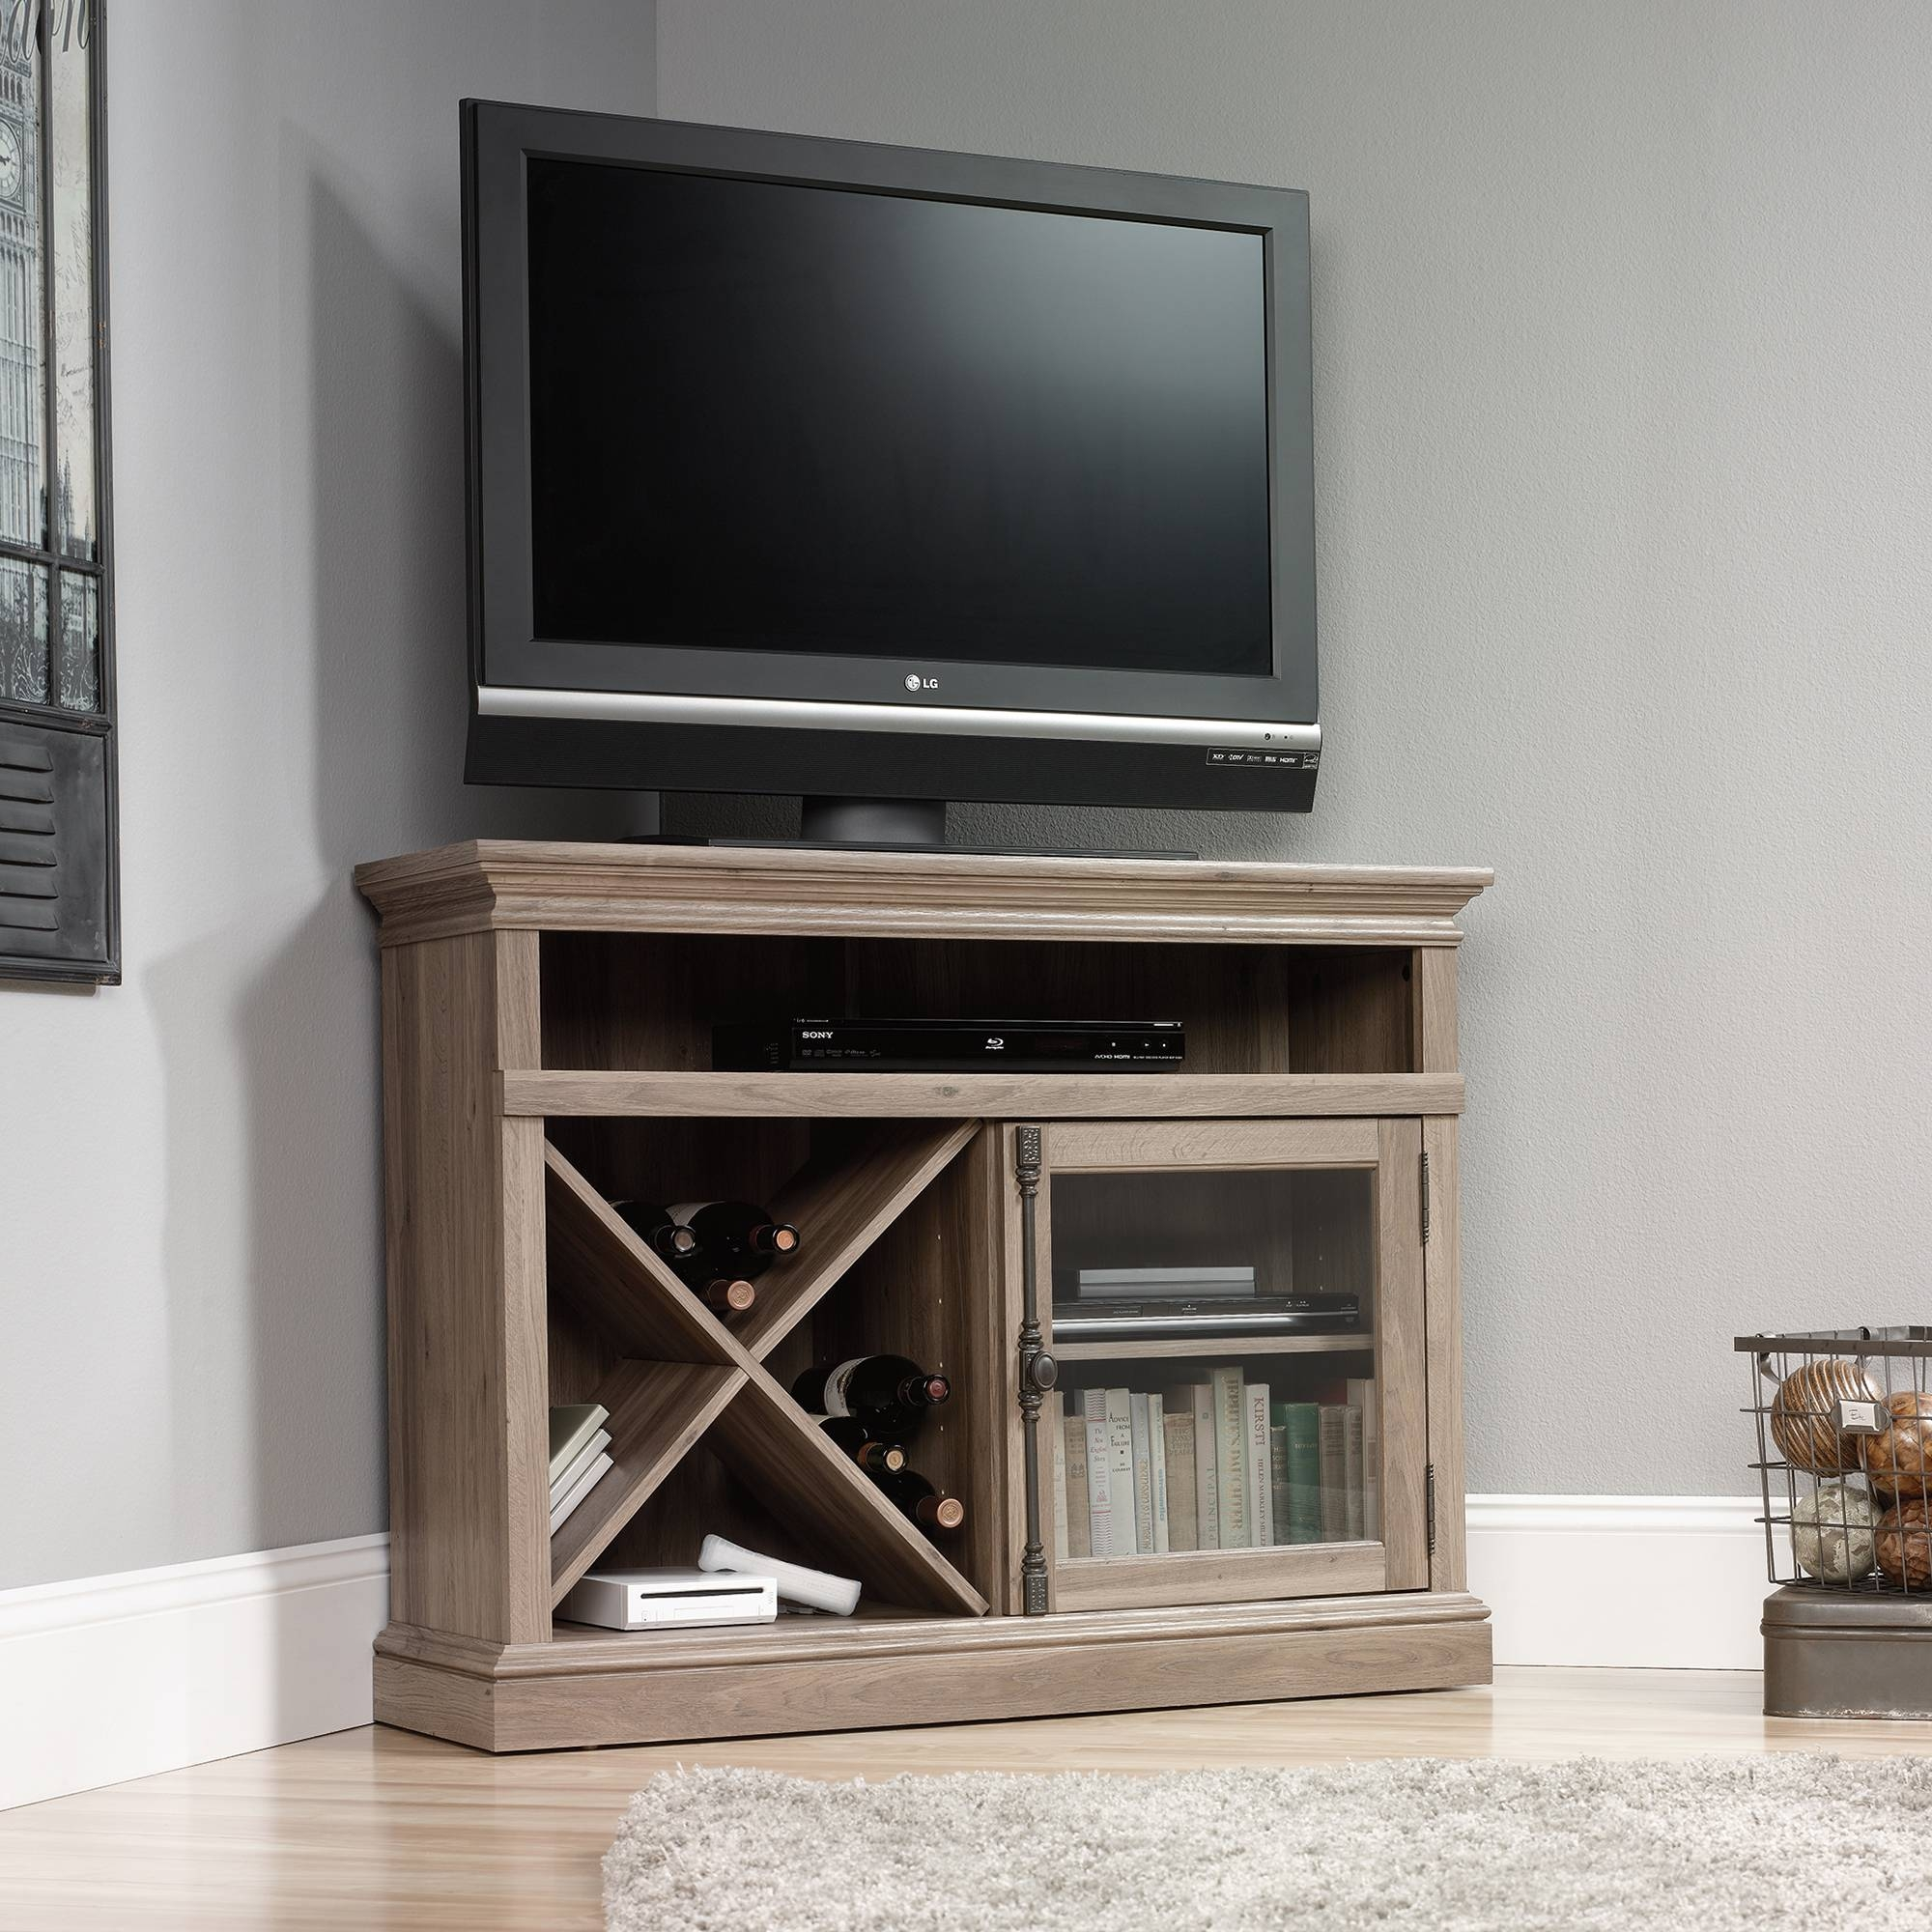 Barrister Lane | Corner Tv Stand | 414729 | Sauder regarding Corner Tv Stands (Image 1 of 15)